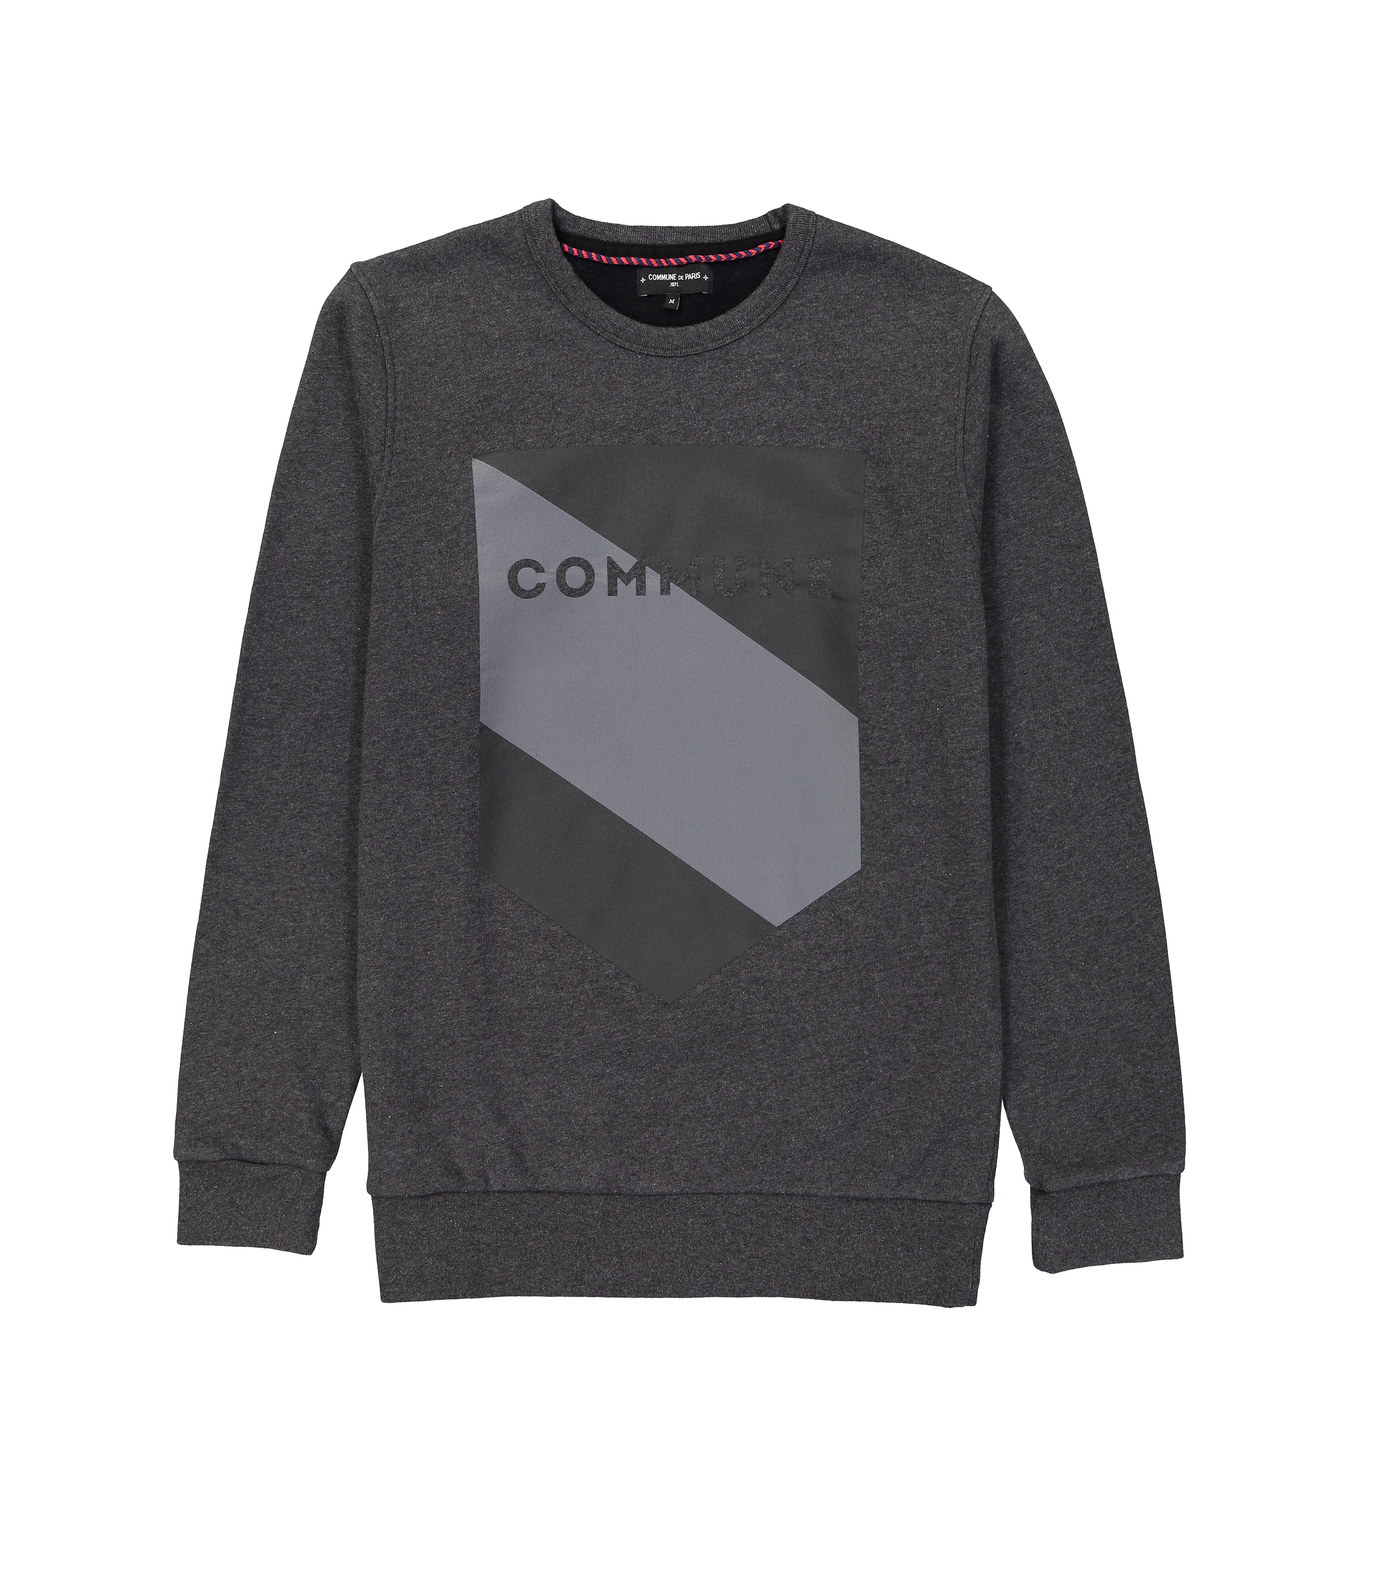 SWEAT BLASON COMMUNE - Dark grey